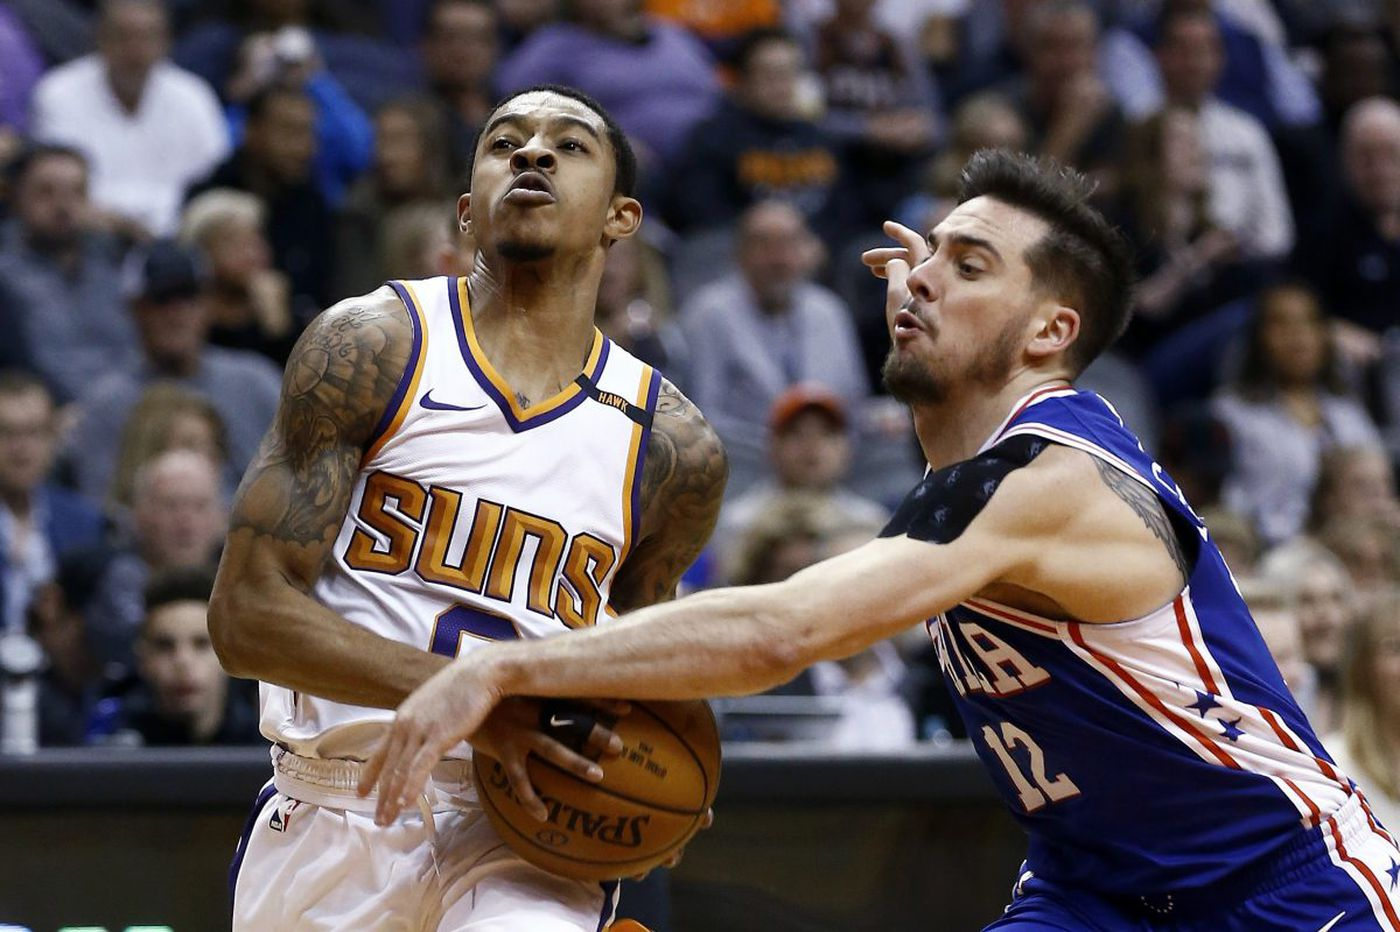 Sixers 123, Suns 110: Dario Saric and Ben Simmons aggressively lead, and other quick observations